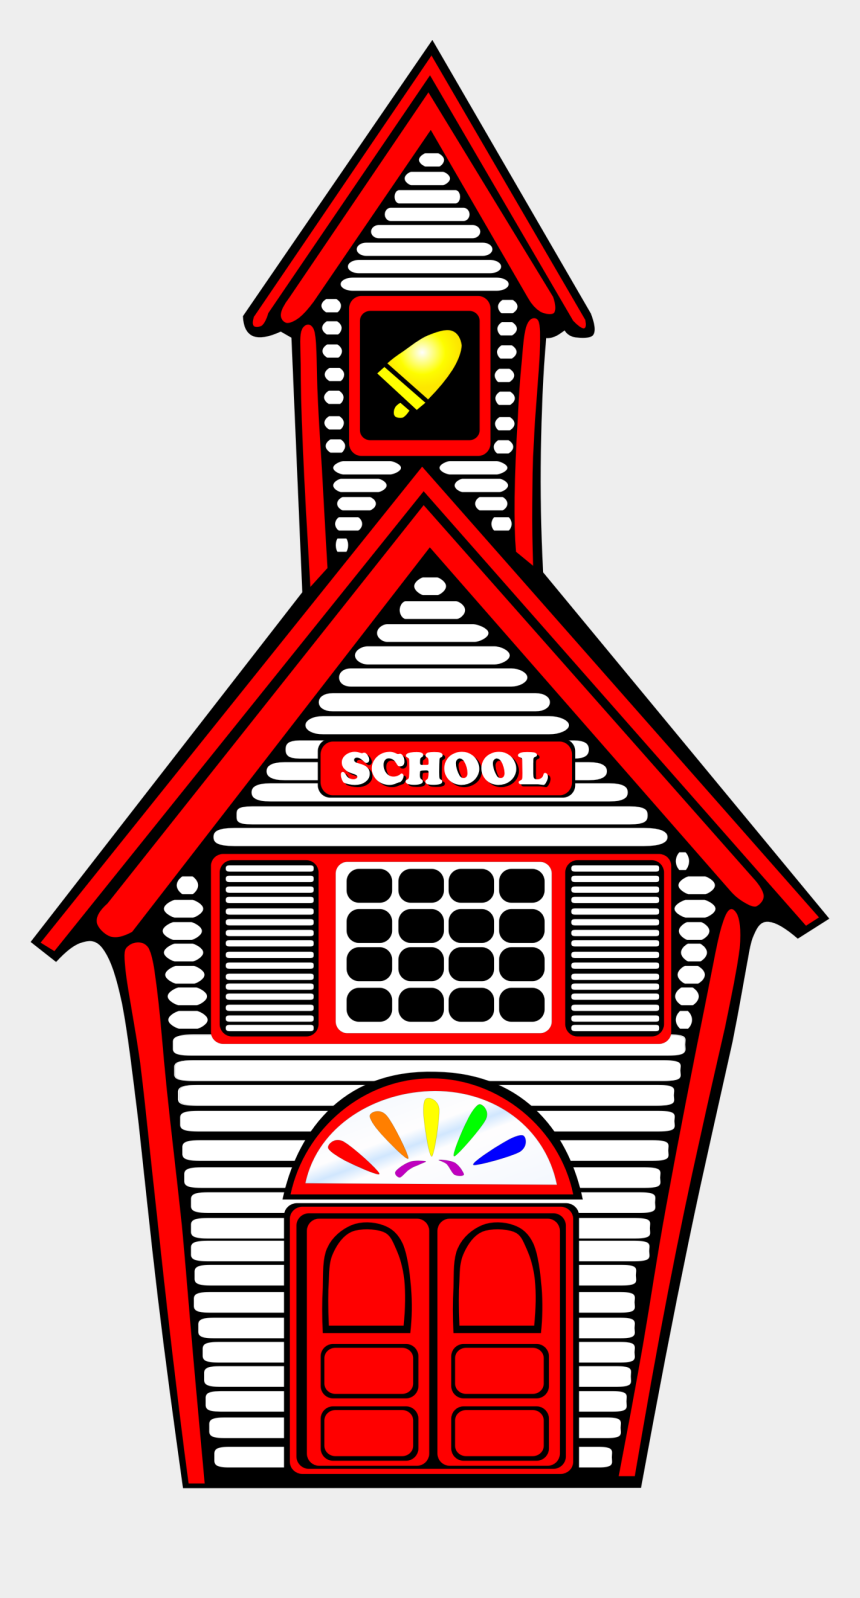 school house clipart black and white, Cartoons - School House Png - Old School Clipart